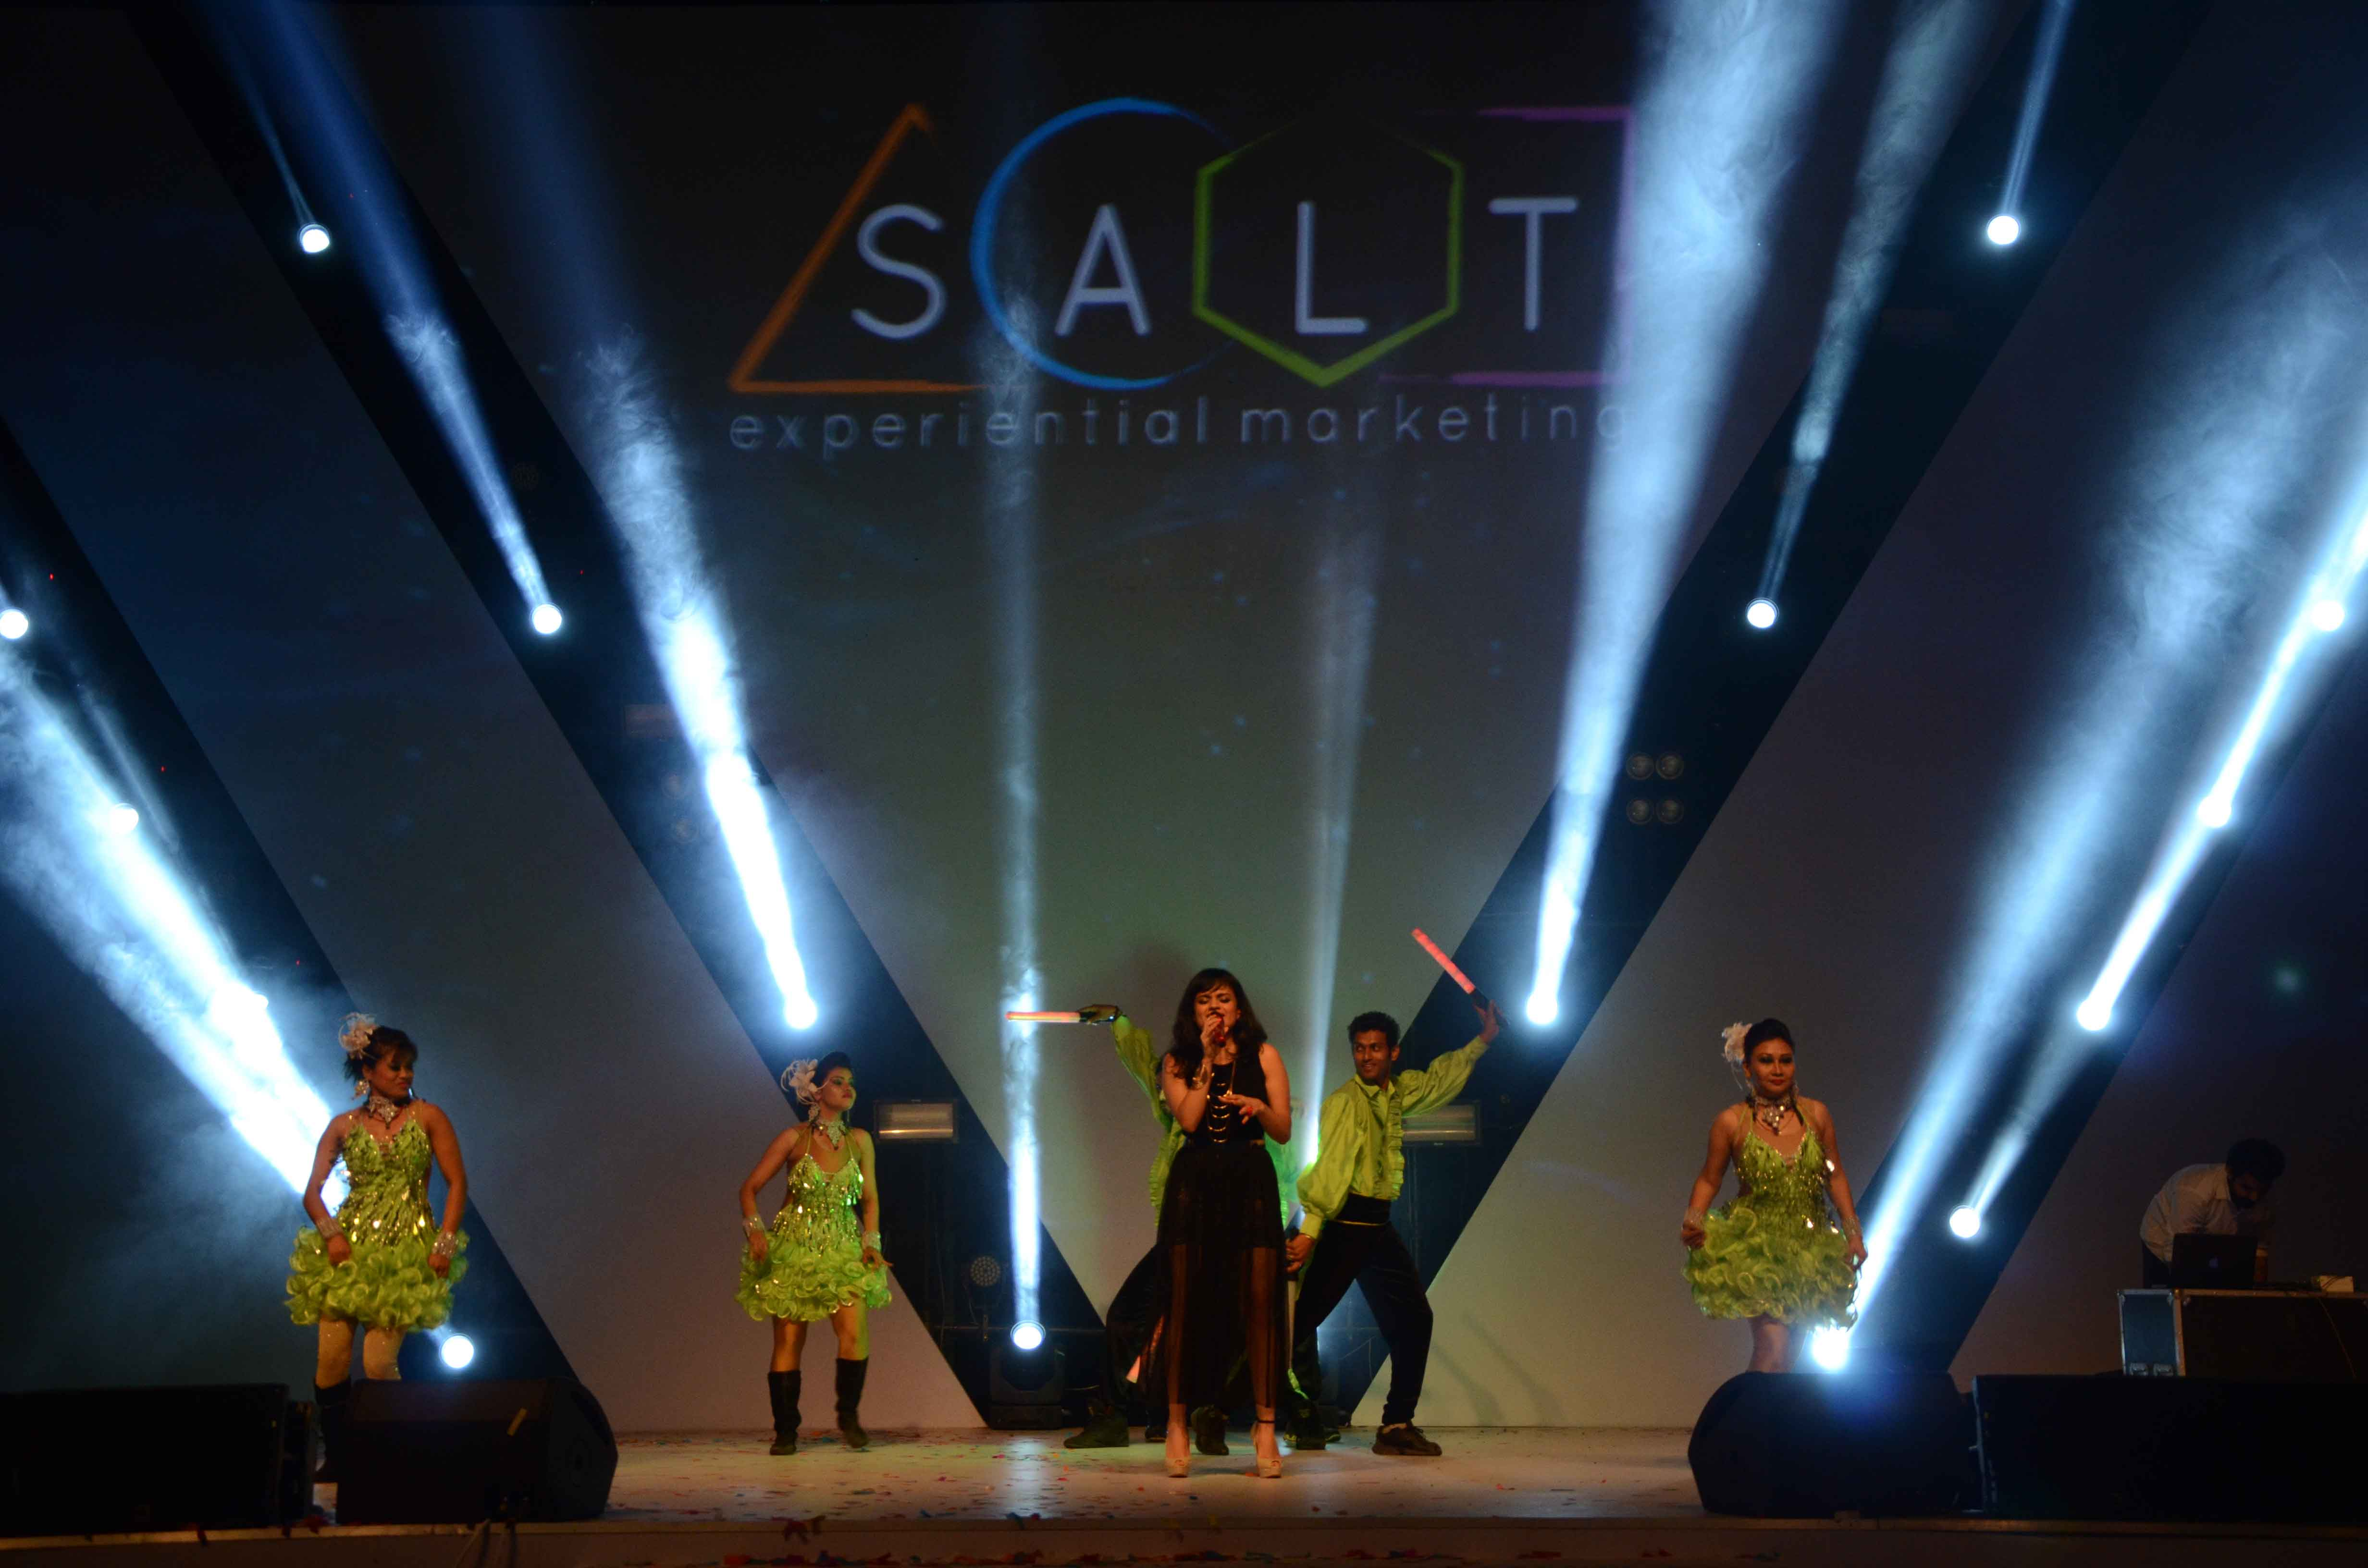 Salt Experiential Marketing celebrates its first Annual Day!